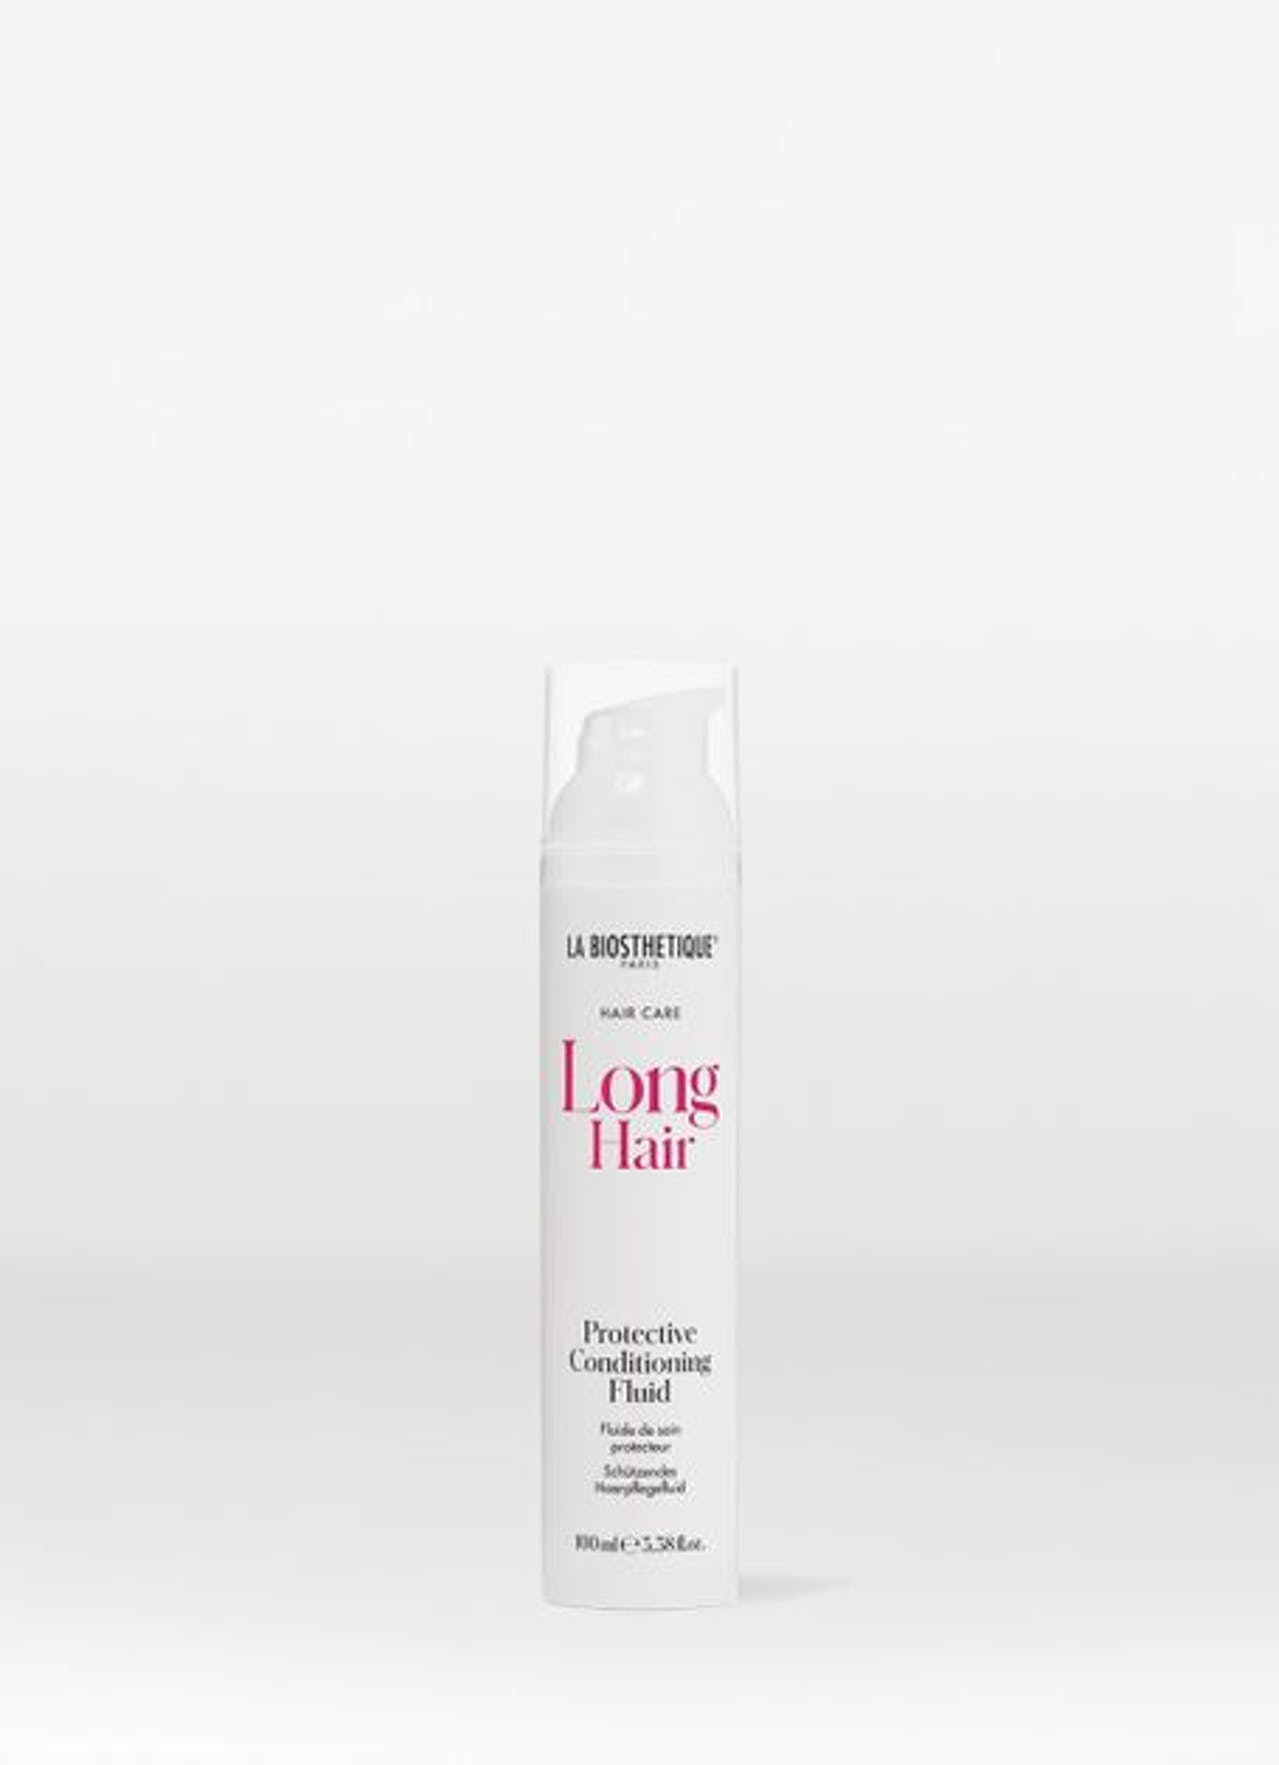 Long Hair Protective Conditioning Fluid Image